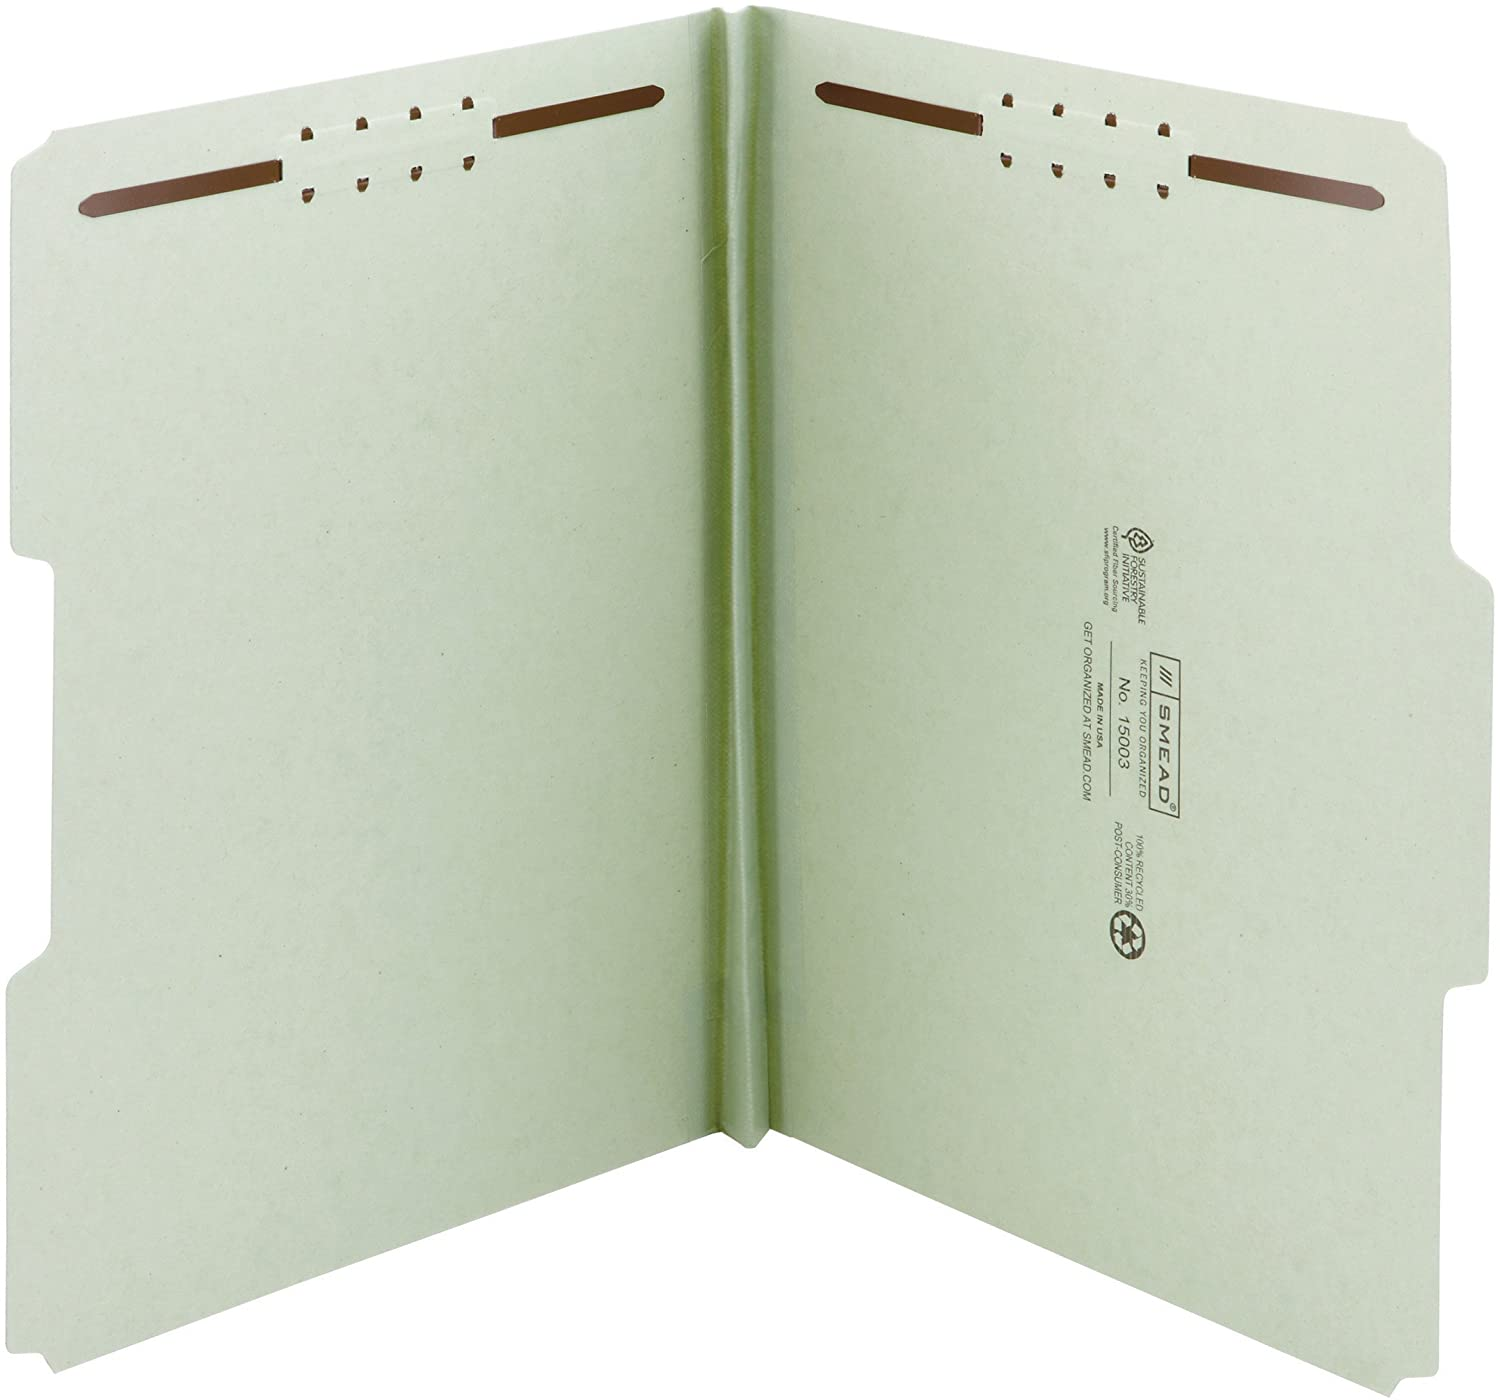 Smead 100% Recycled Pressboard Fastener File Folder, 2 Fasteners, 1/3-Cut Tab, 1 Expansion, Letter Size, Gray/Green, 25 per Box (15003)